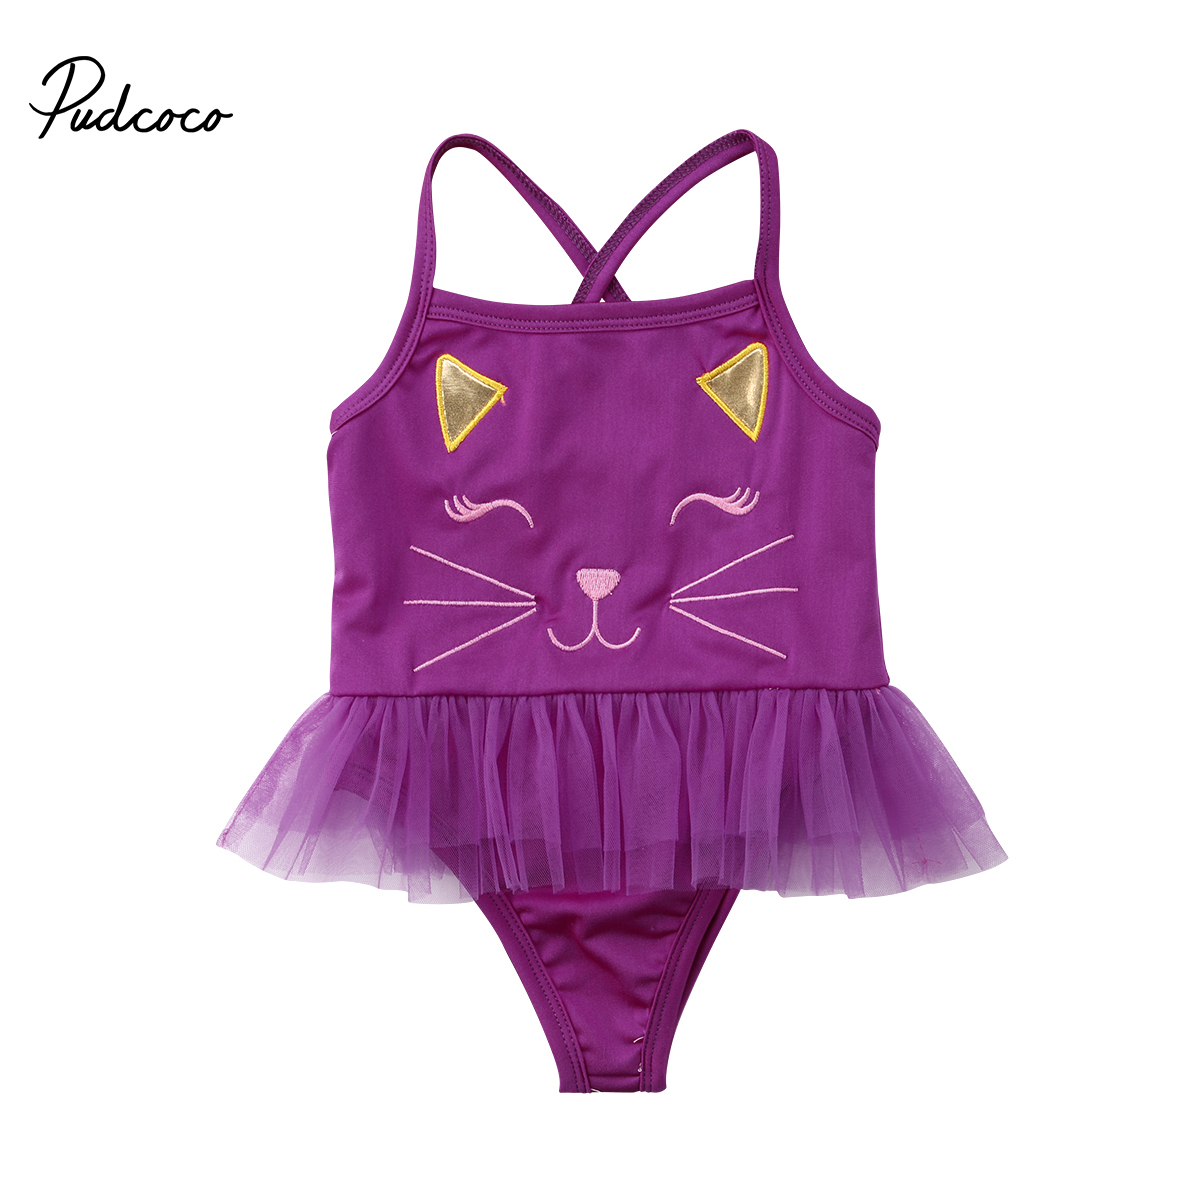 2018 NEW Swimwear Kids Baby Girls Cartoon Cat Tulle One-piece Swimwear Lace Swimsuit Bathing Clothes 1-3T